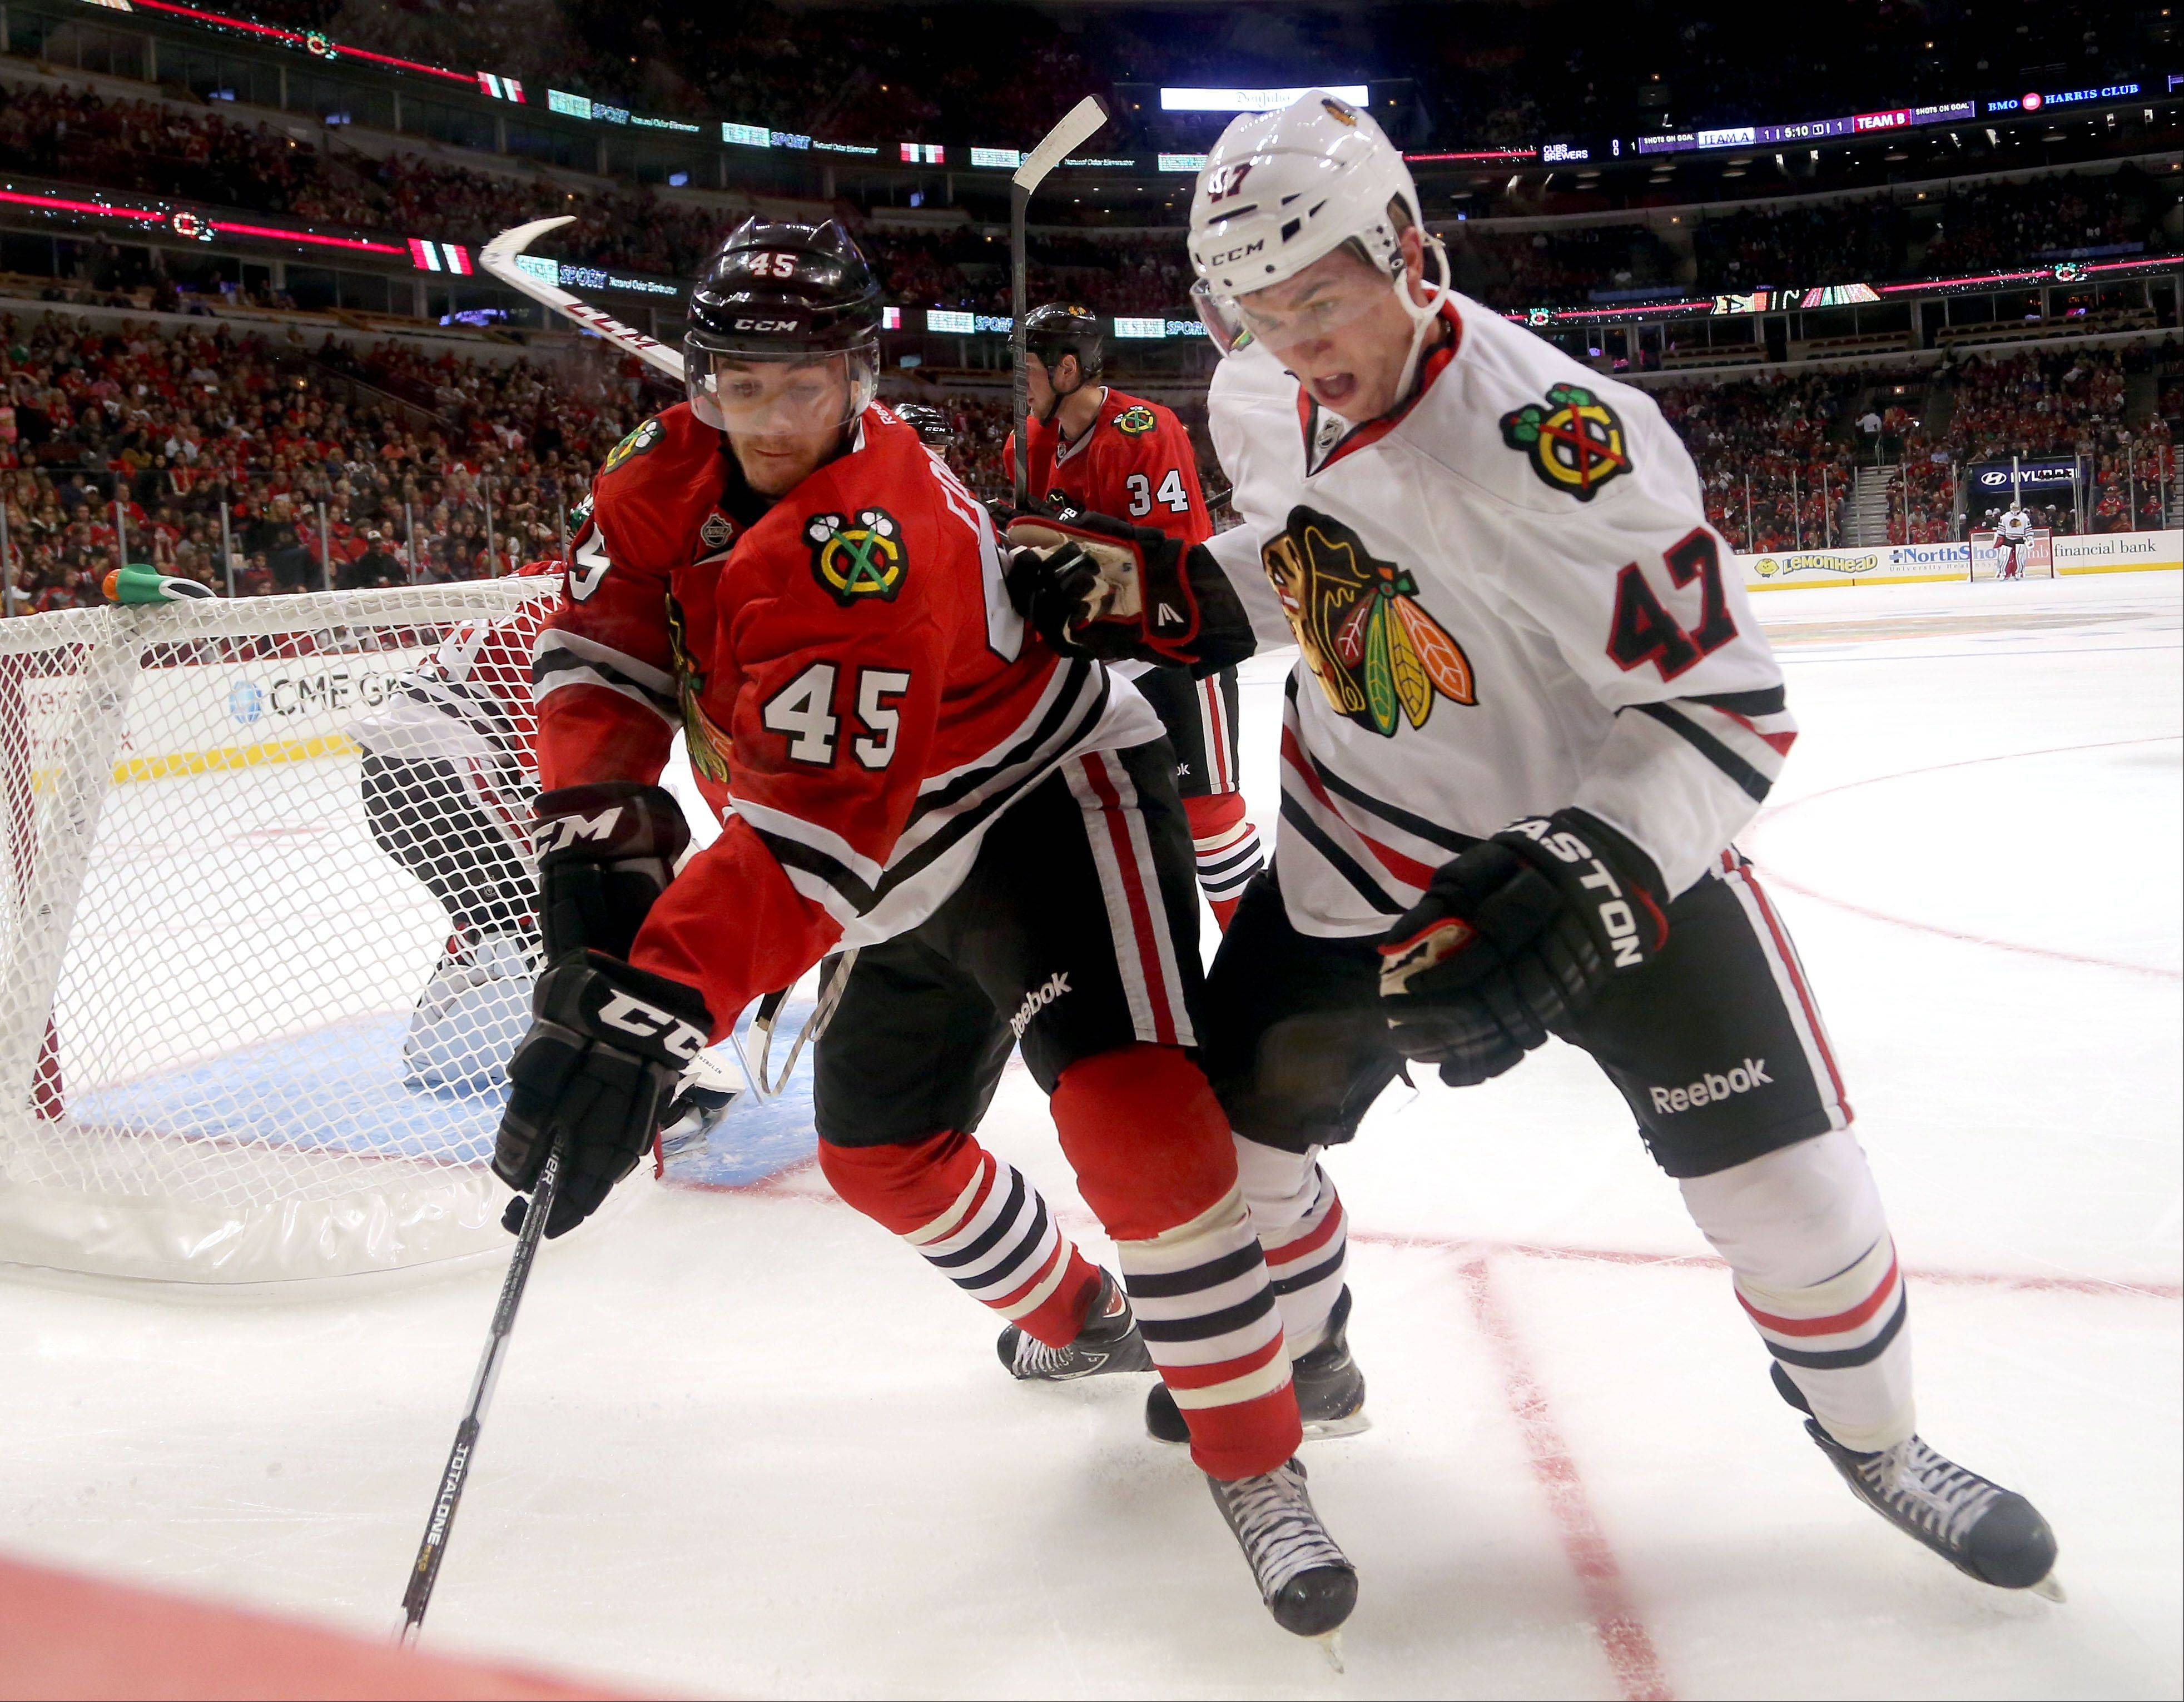 Steve Lundy/slundy@dailyherald.com Dillon Fornier, left, and Pat Mullane battle for the puck during the Blackhawks' annual Training Camp Festival Monday at the United Center in Chicago.